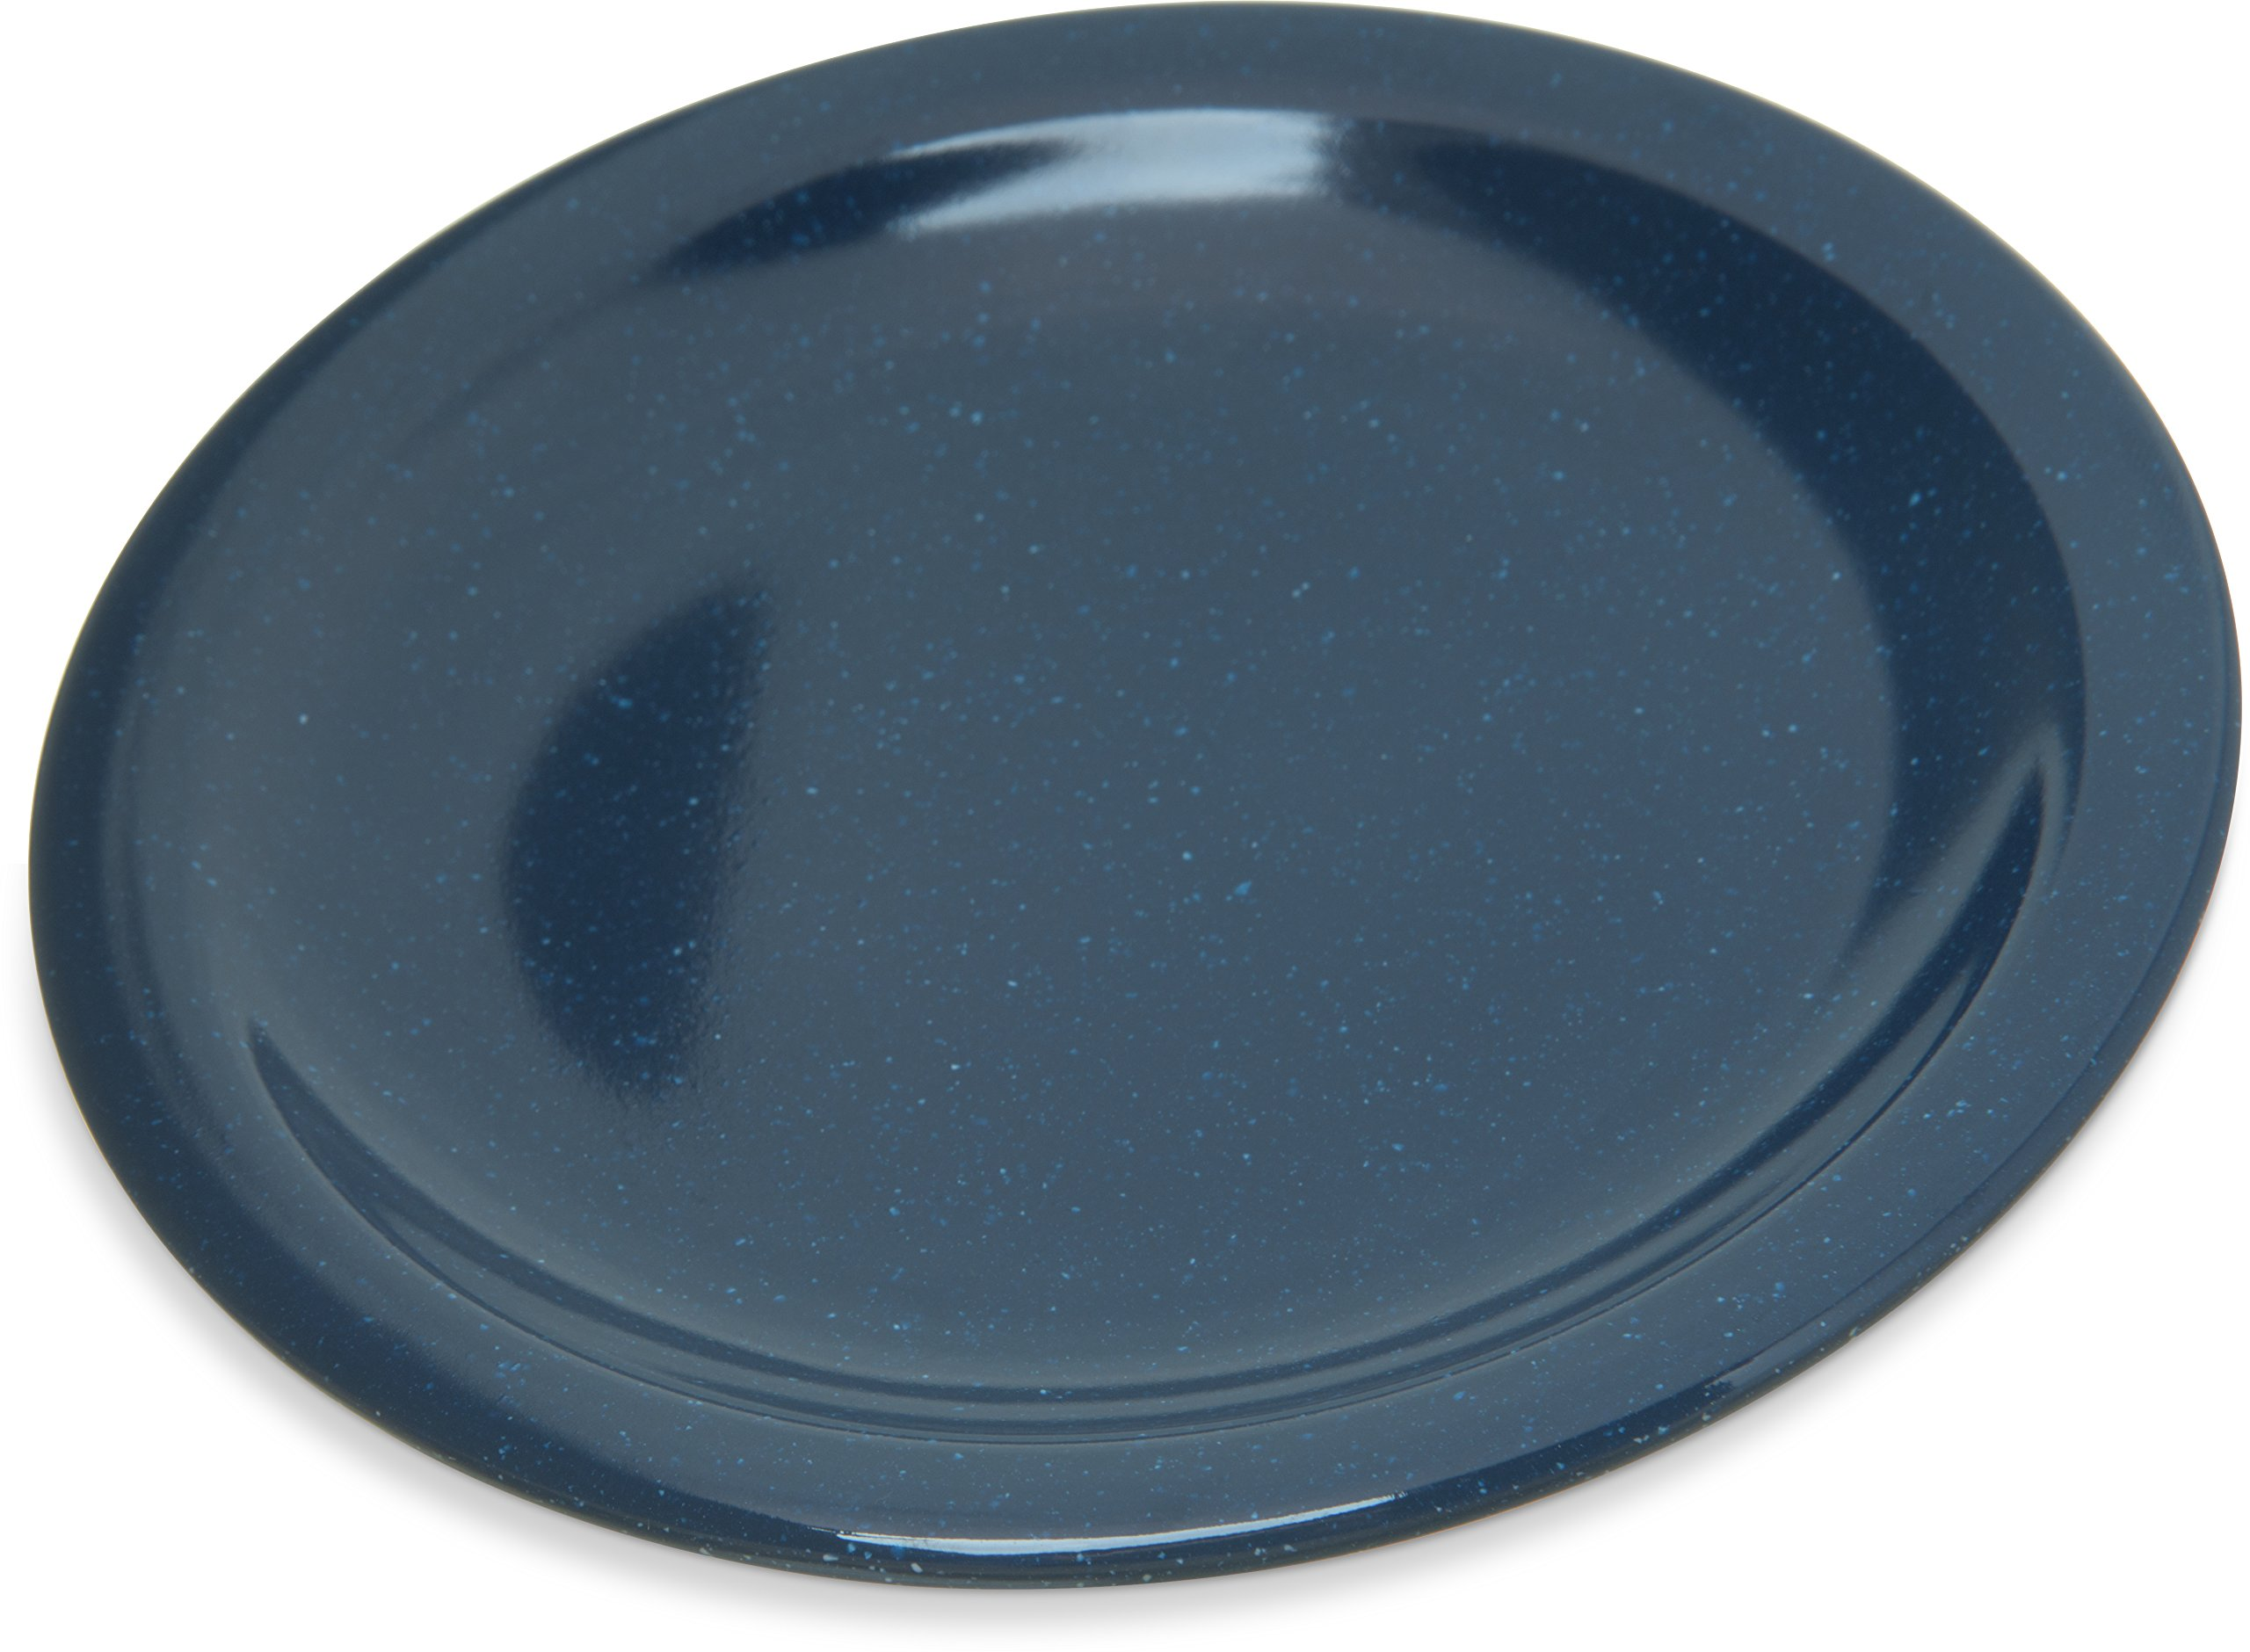 Carlisle 4350535 Dallas Ware Melamine Bread and Butter Plate, 0.66 x 5.58'', Cafe Blue (Case of 48)